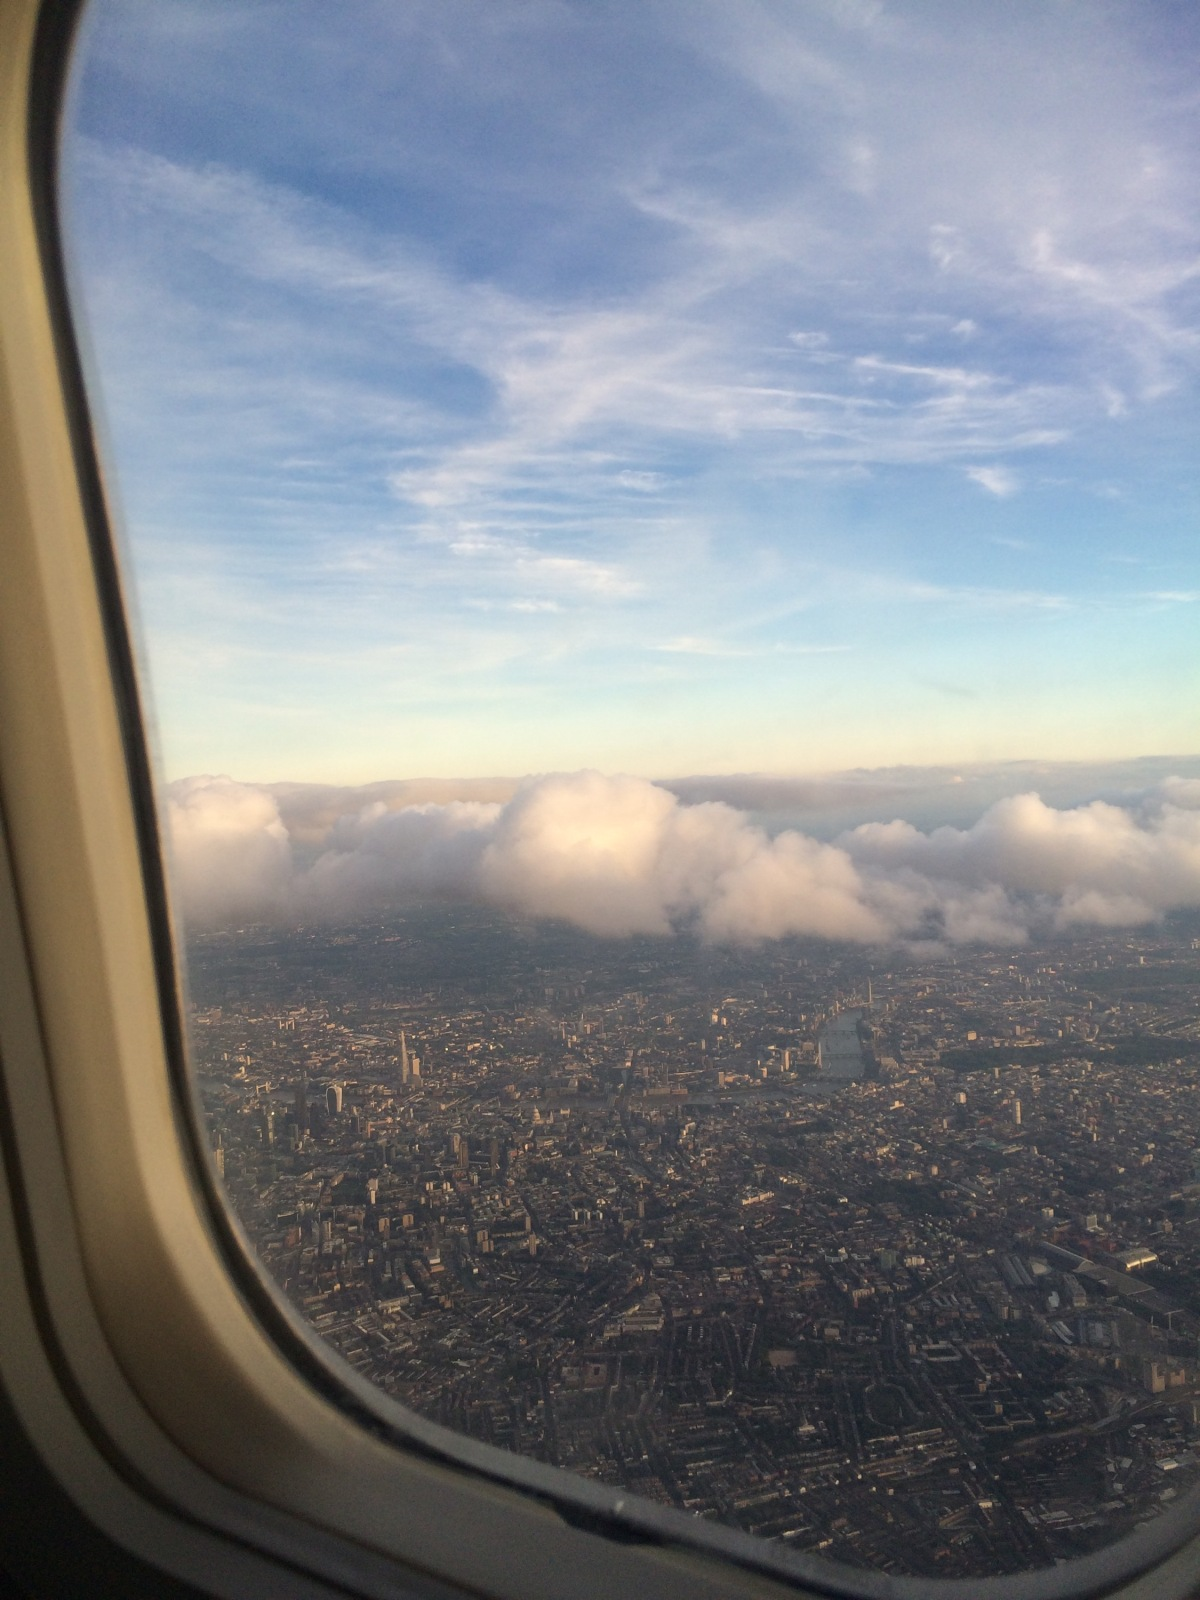 Arrival hiccups in London